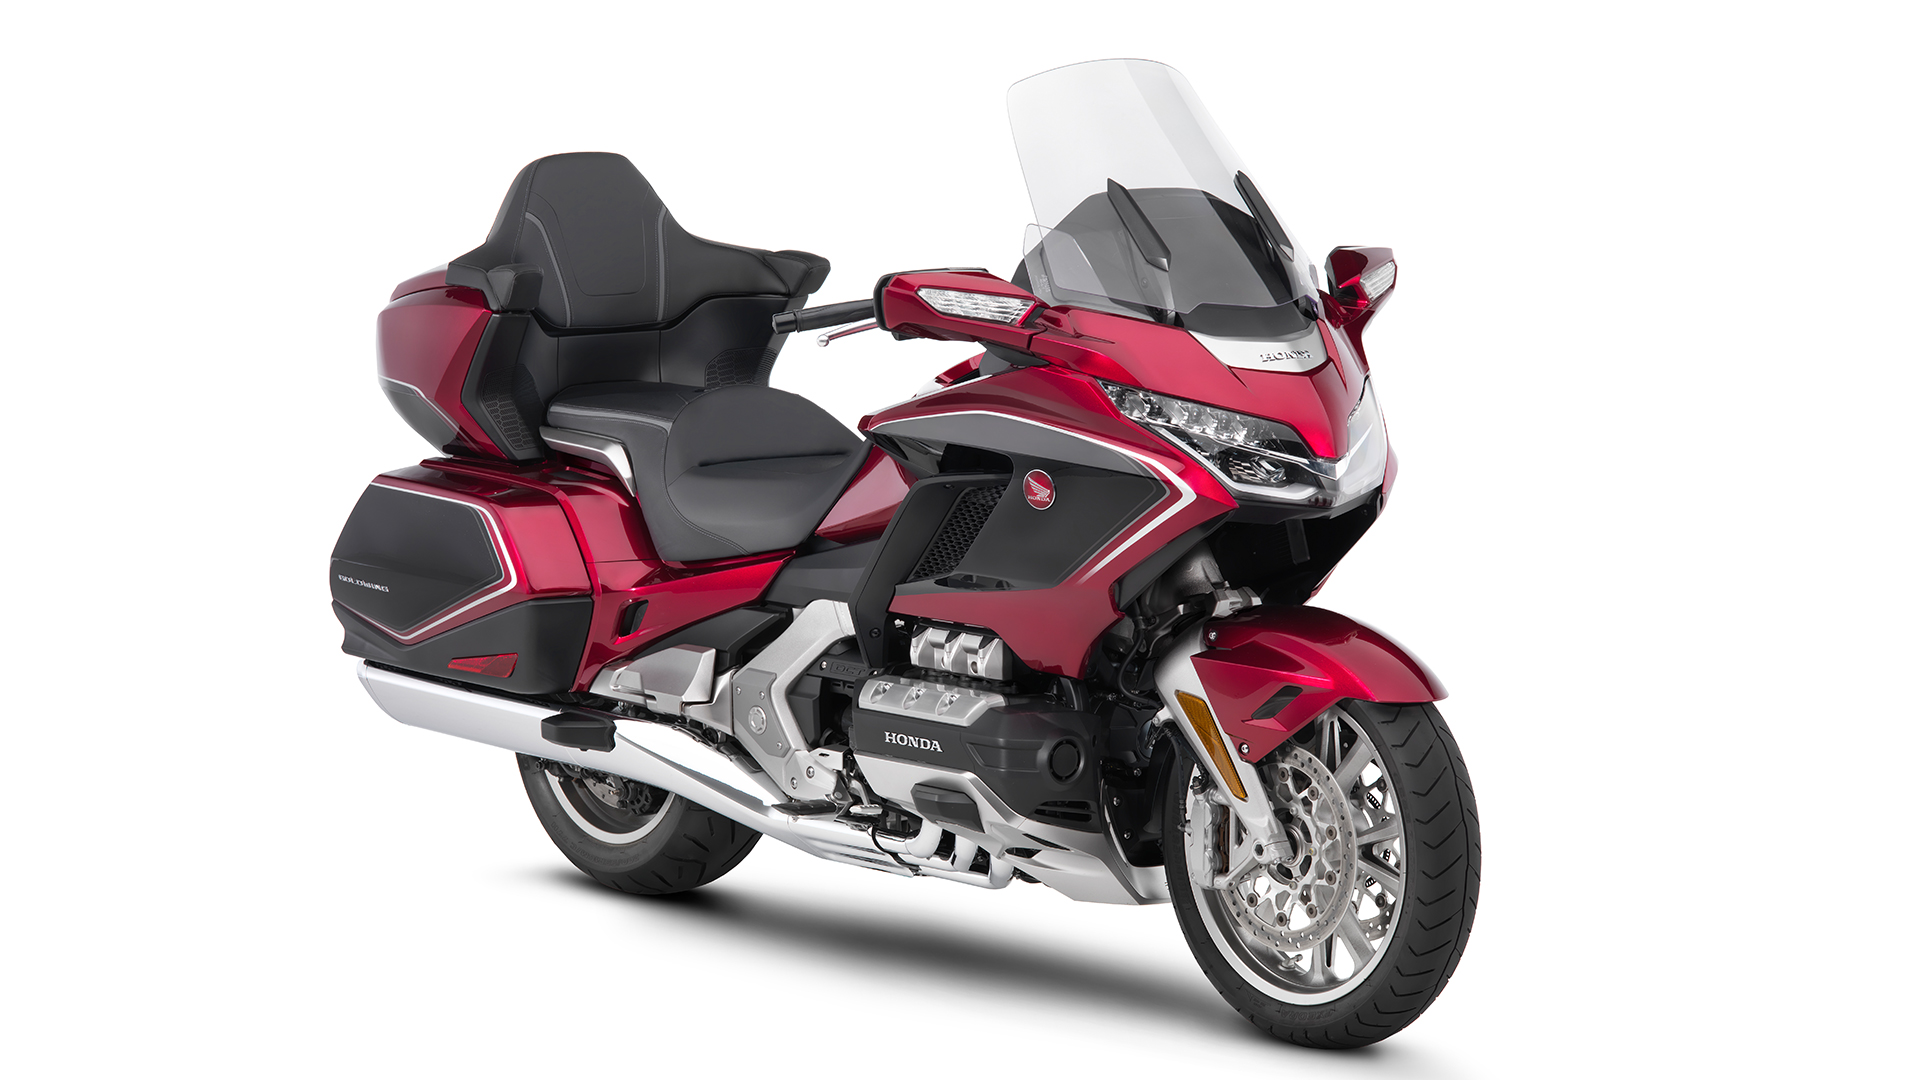 Honda Goldwing 2018 Price Mileage Reviews Specification Gallery Overdrive